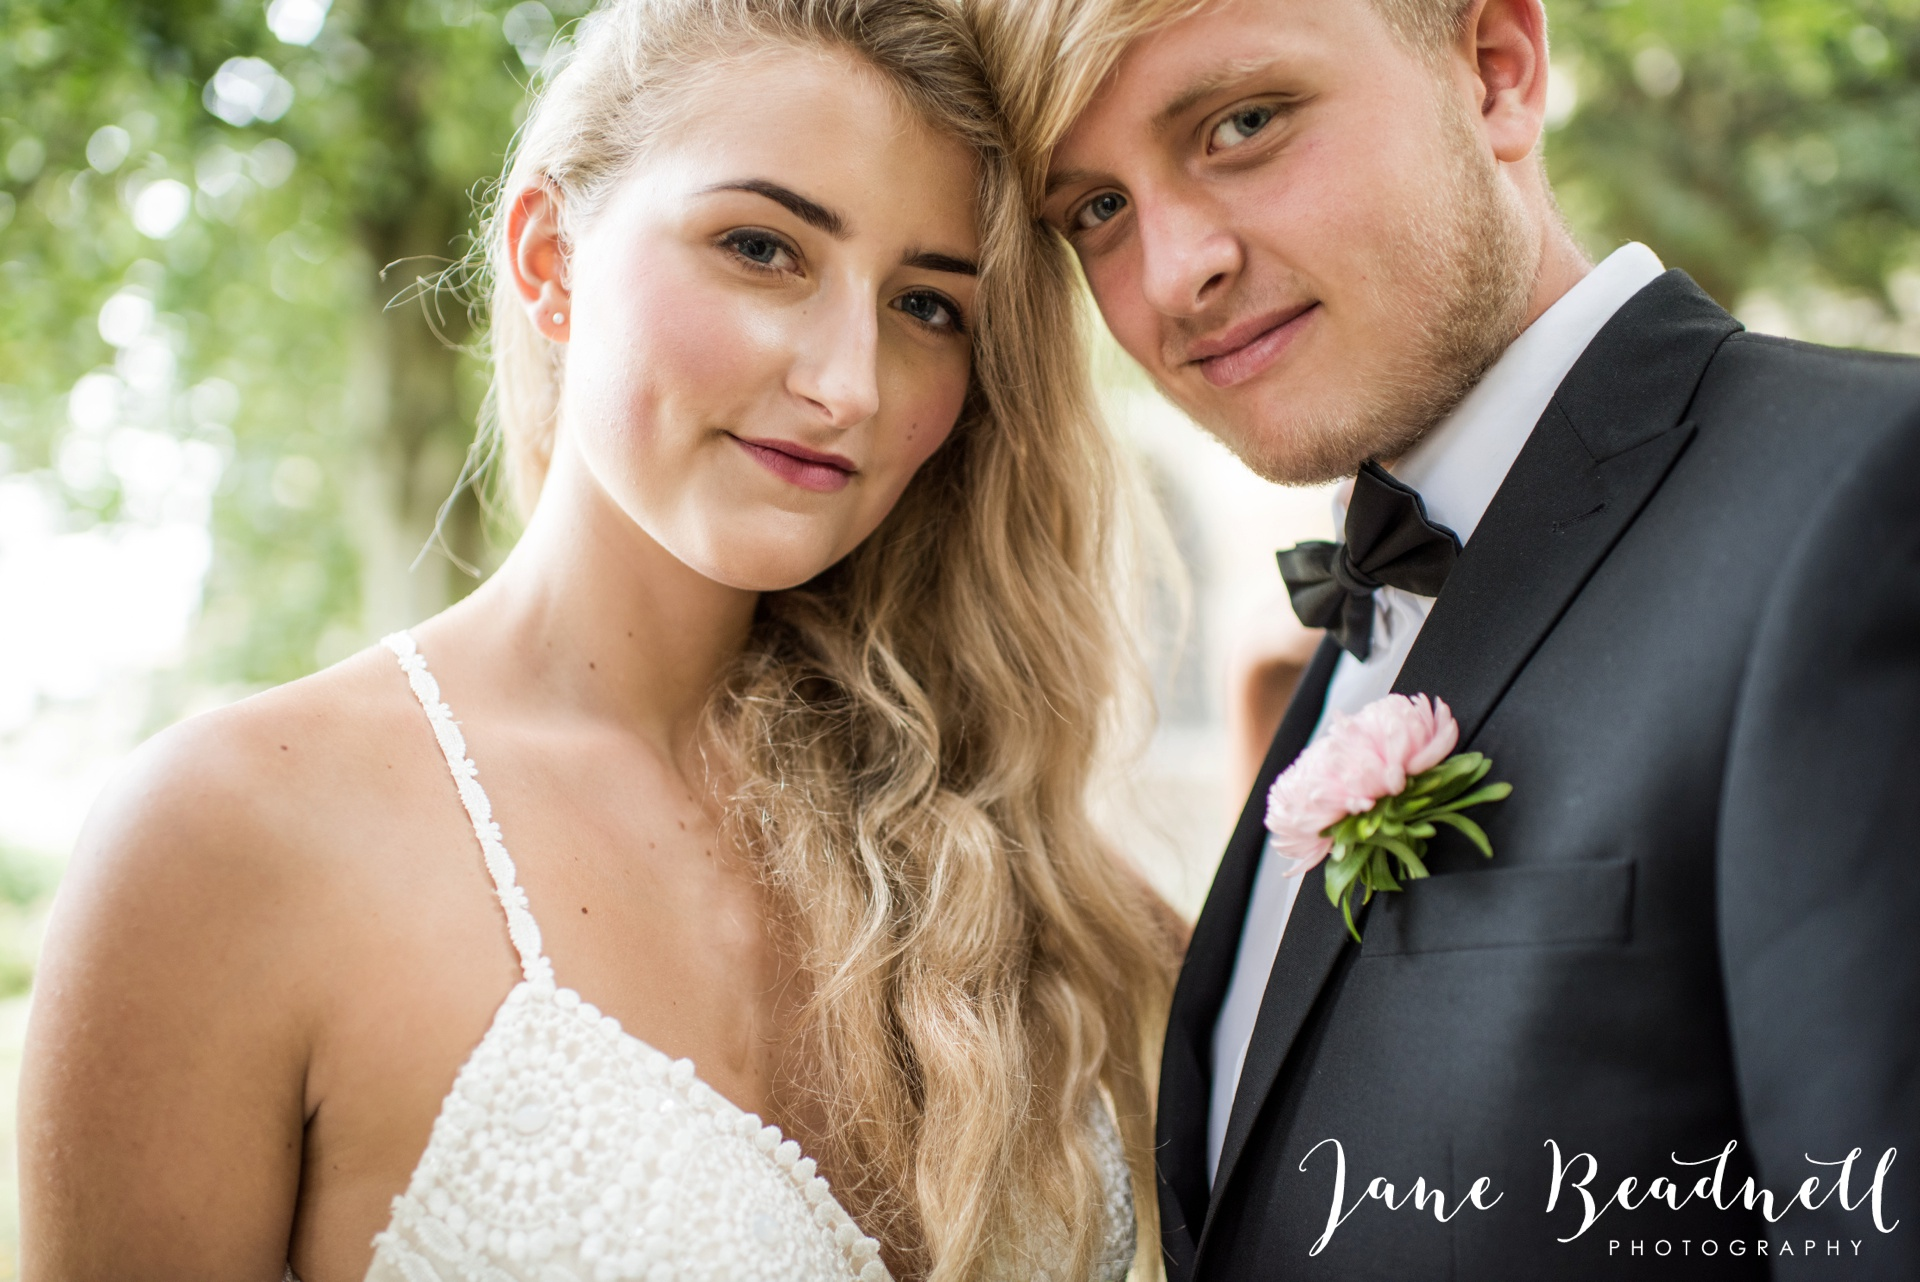 yorkshire-fine-art-wedding-photographer-jane-beadnell-photography-with-leafy-couture-wedding-flowers_0003